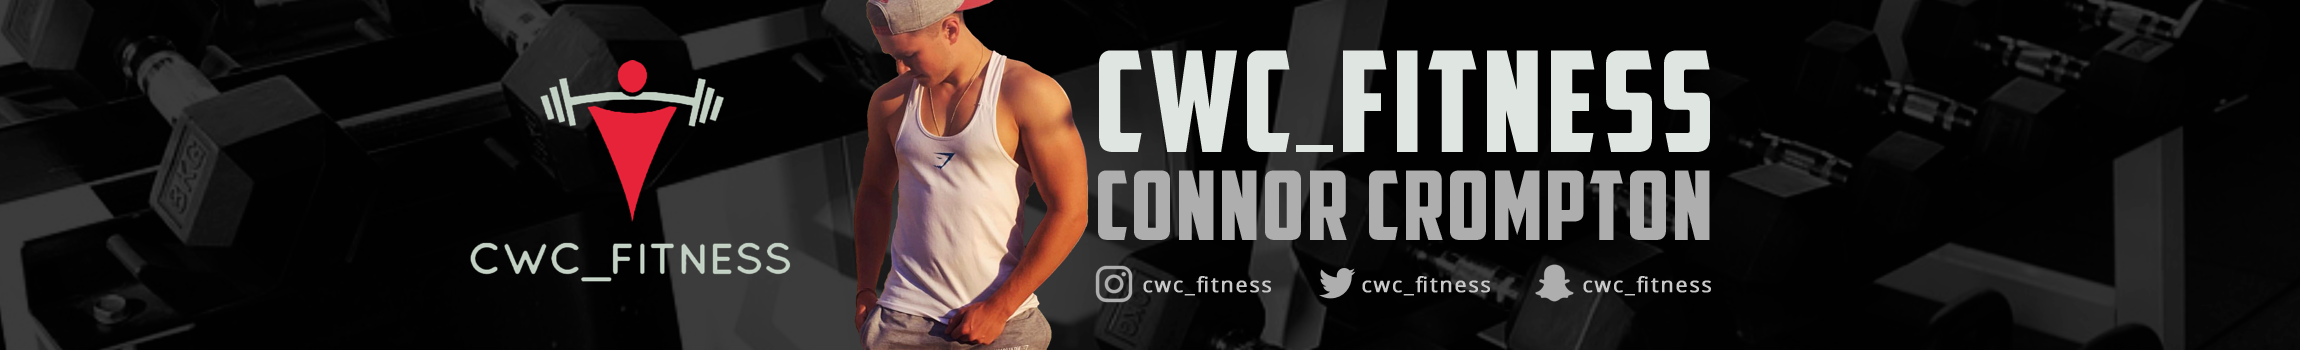 Main title - cwc_fitness